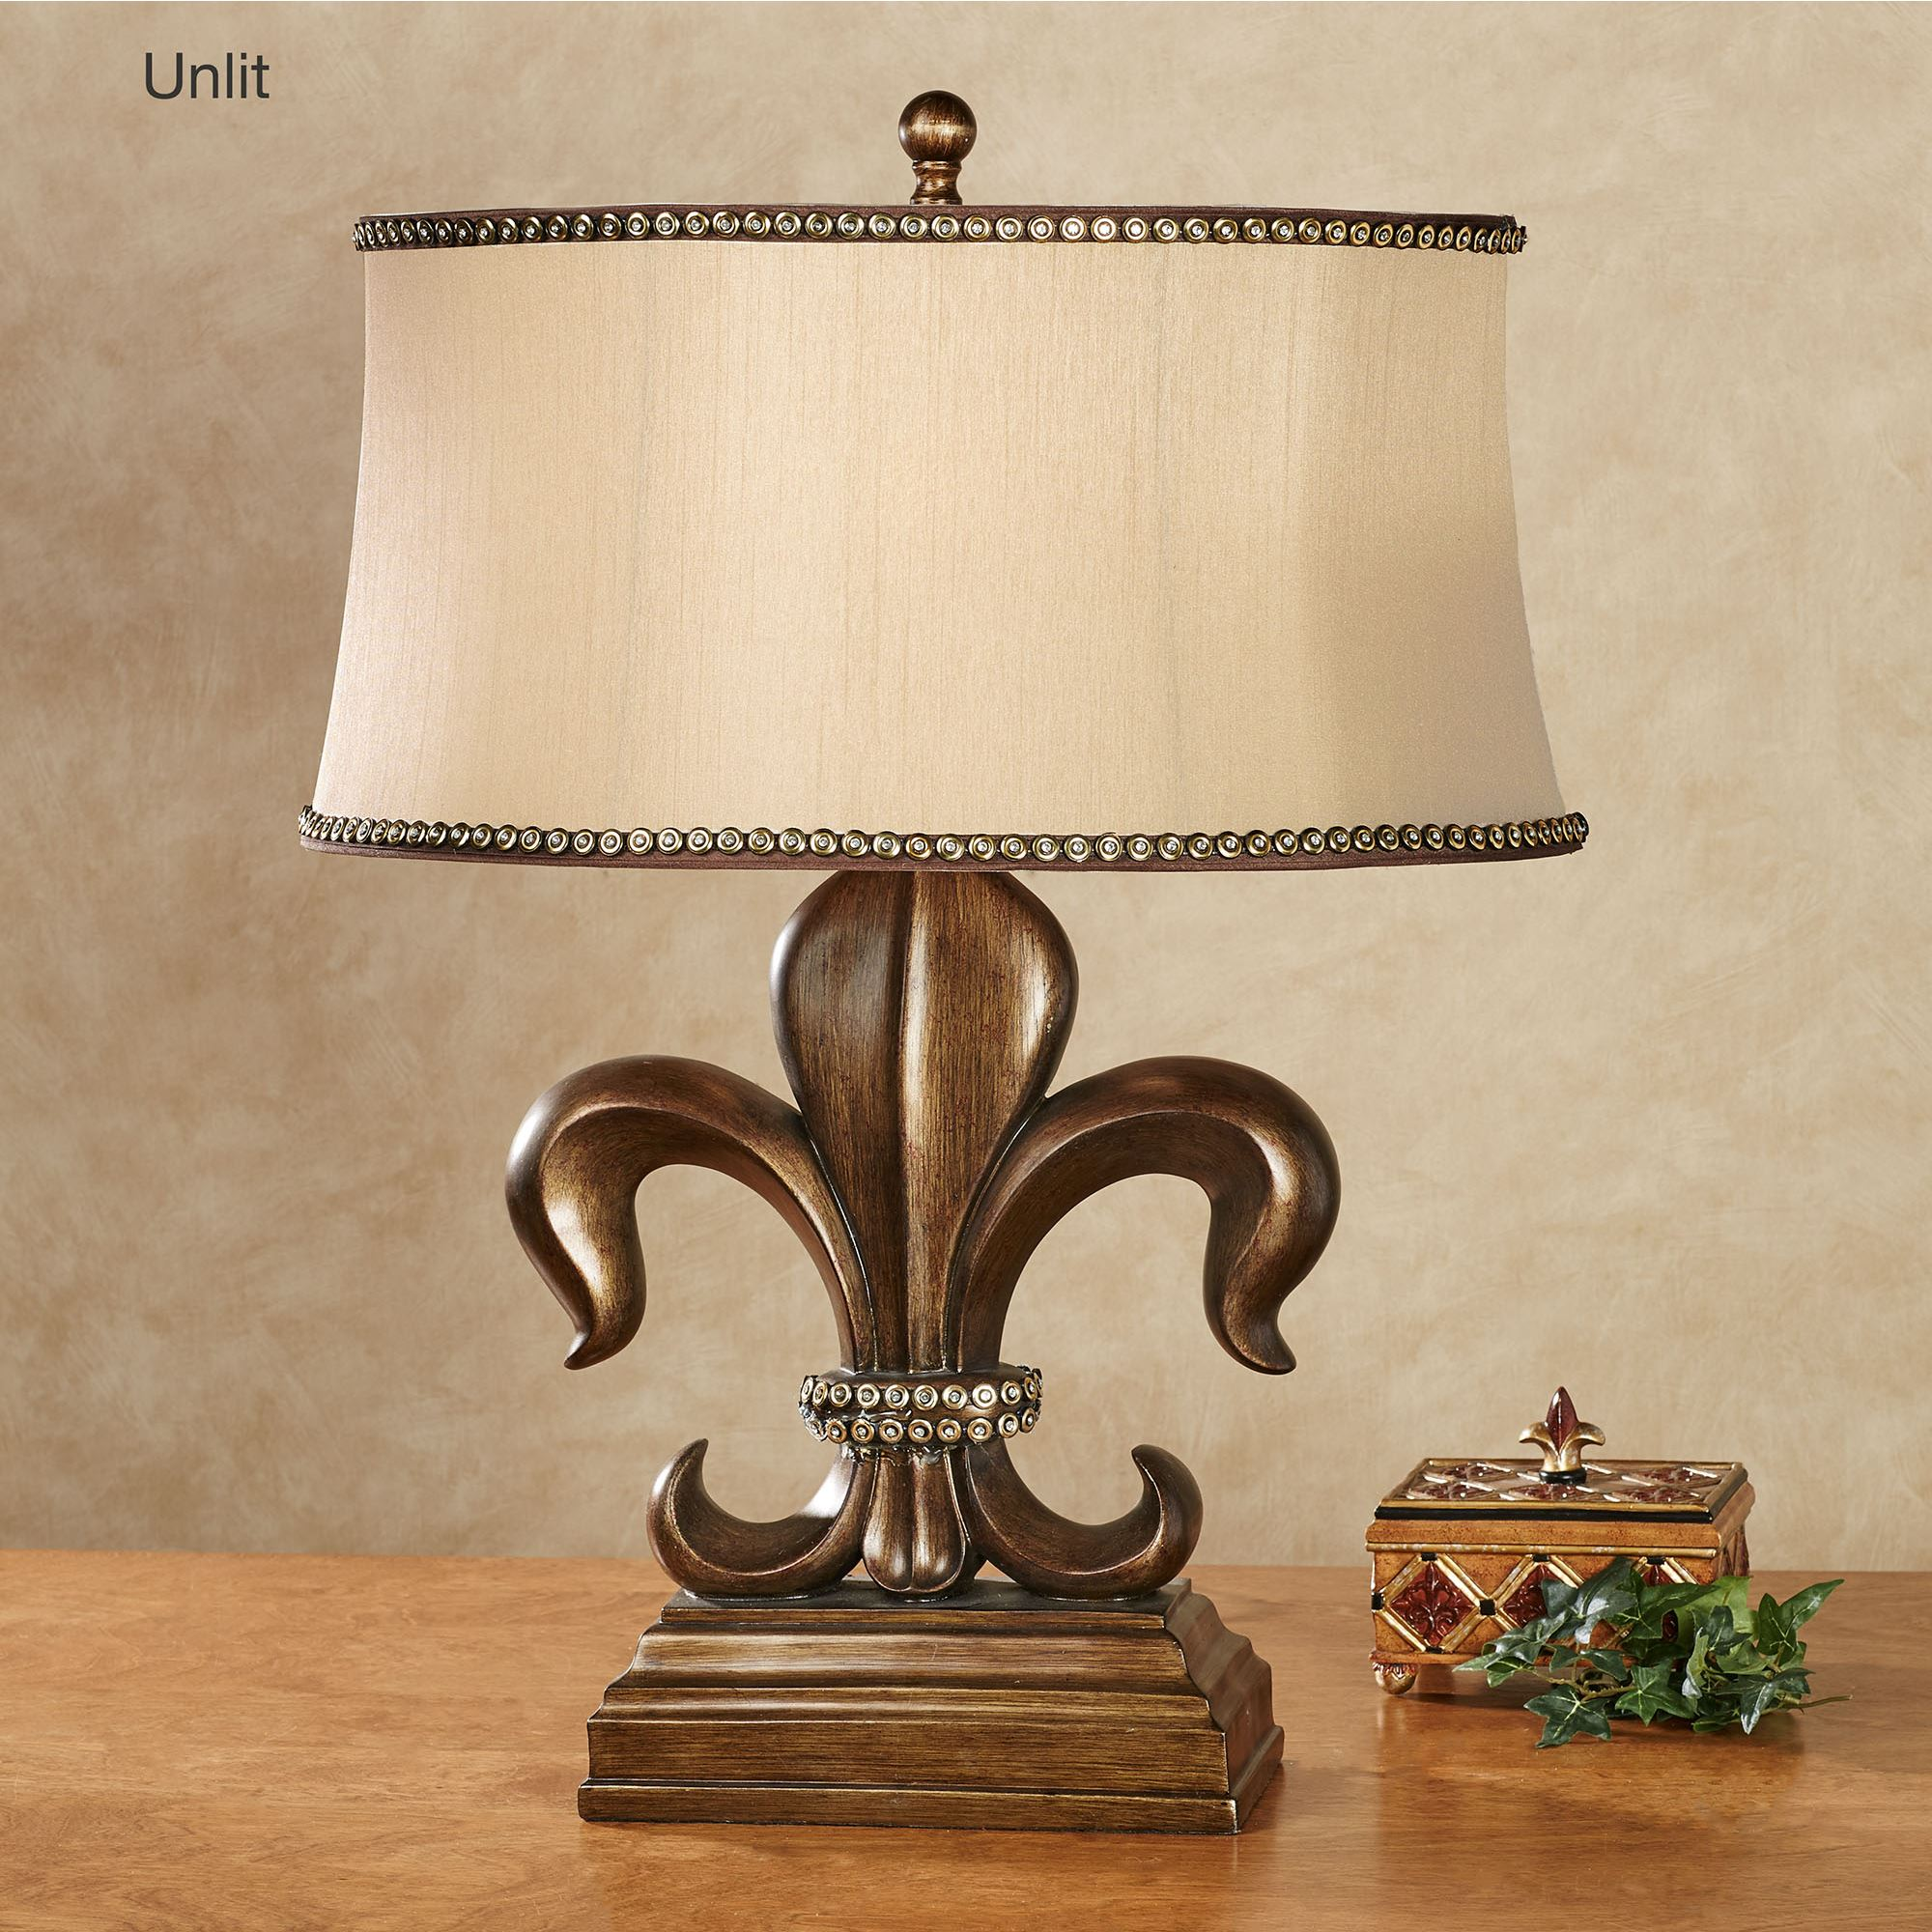 Bon Fayette Fleur De Lis Table Lamp Antique Bronze Each With LED Bulb